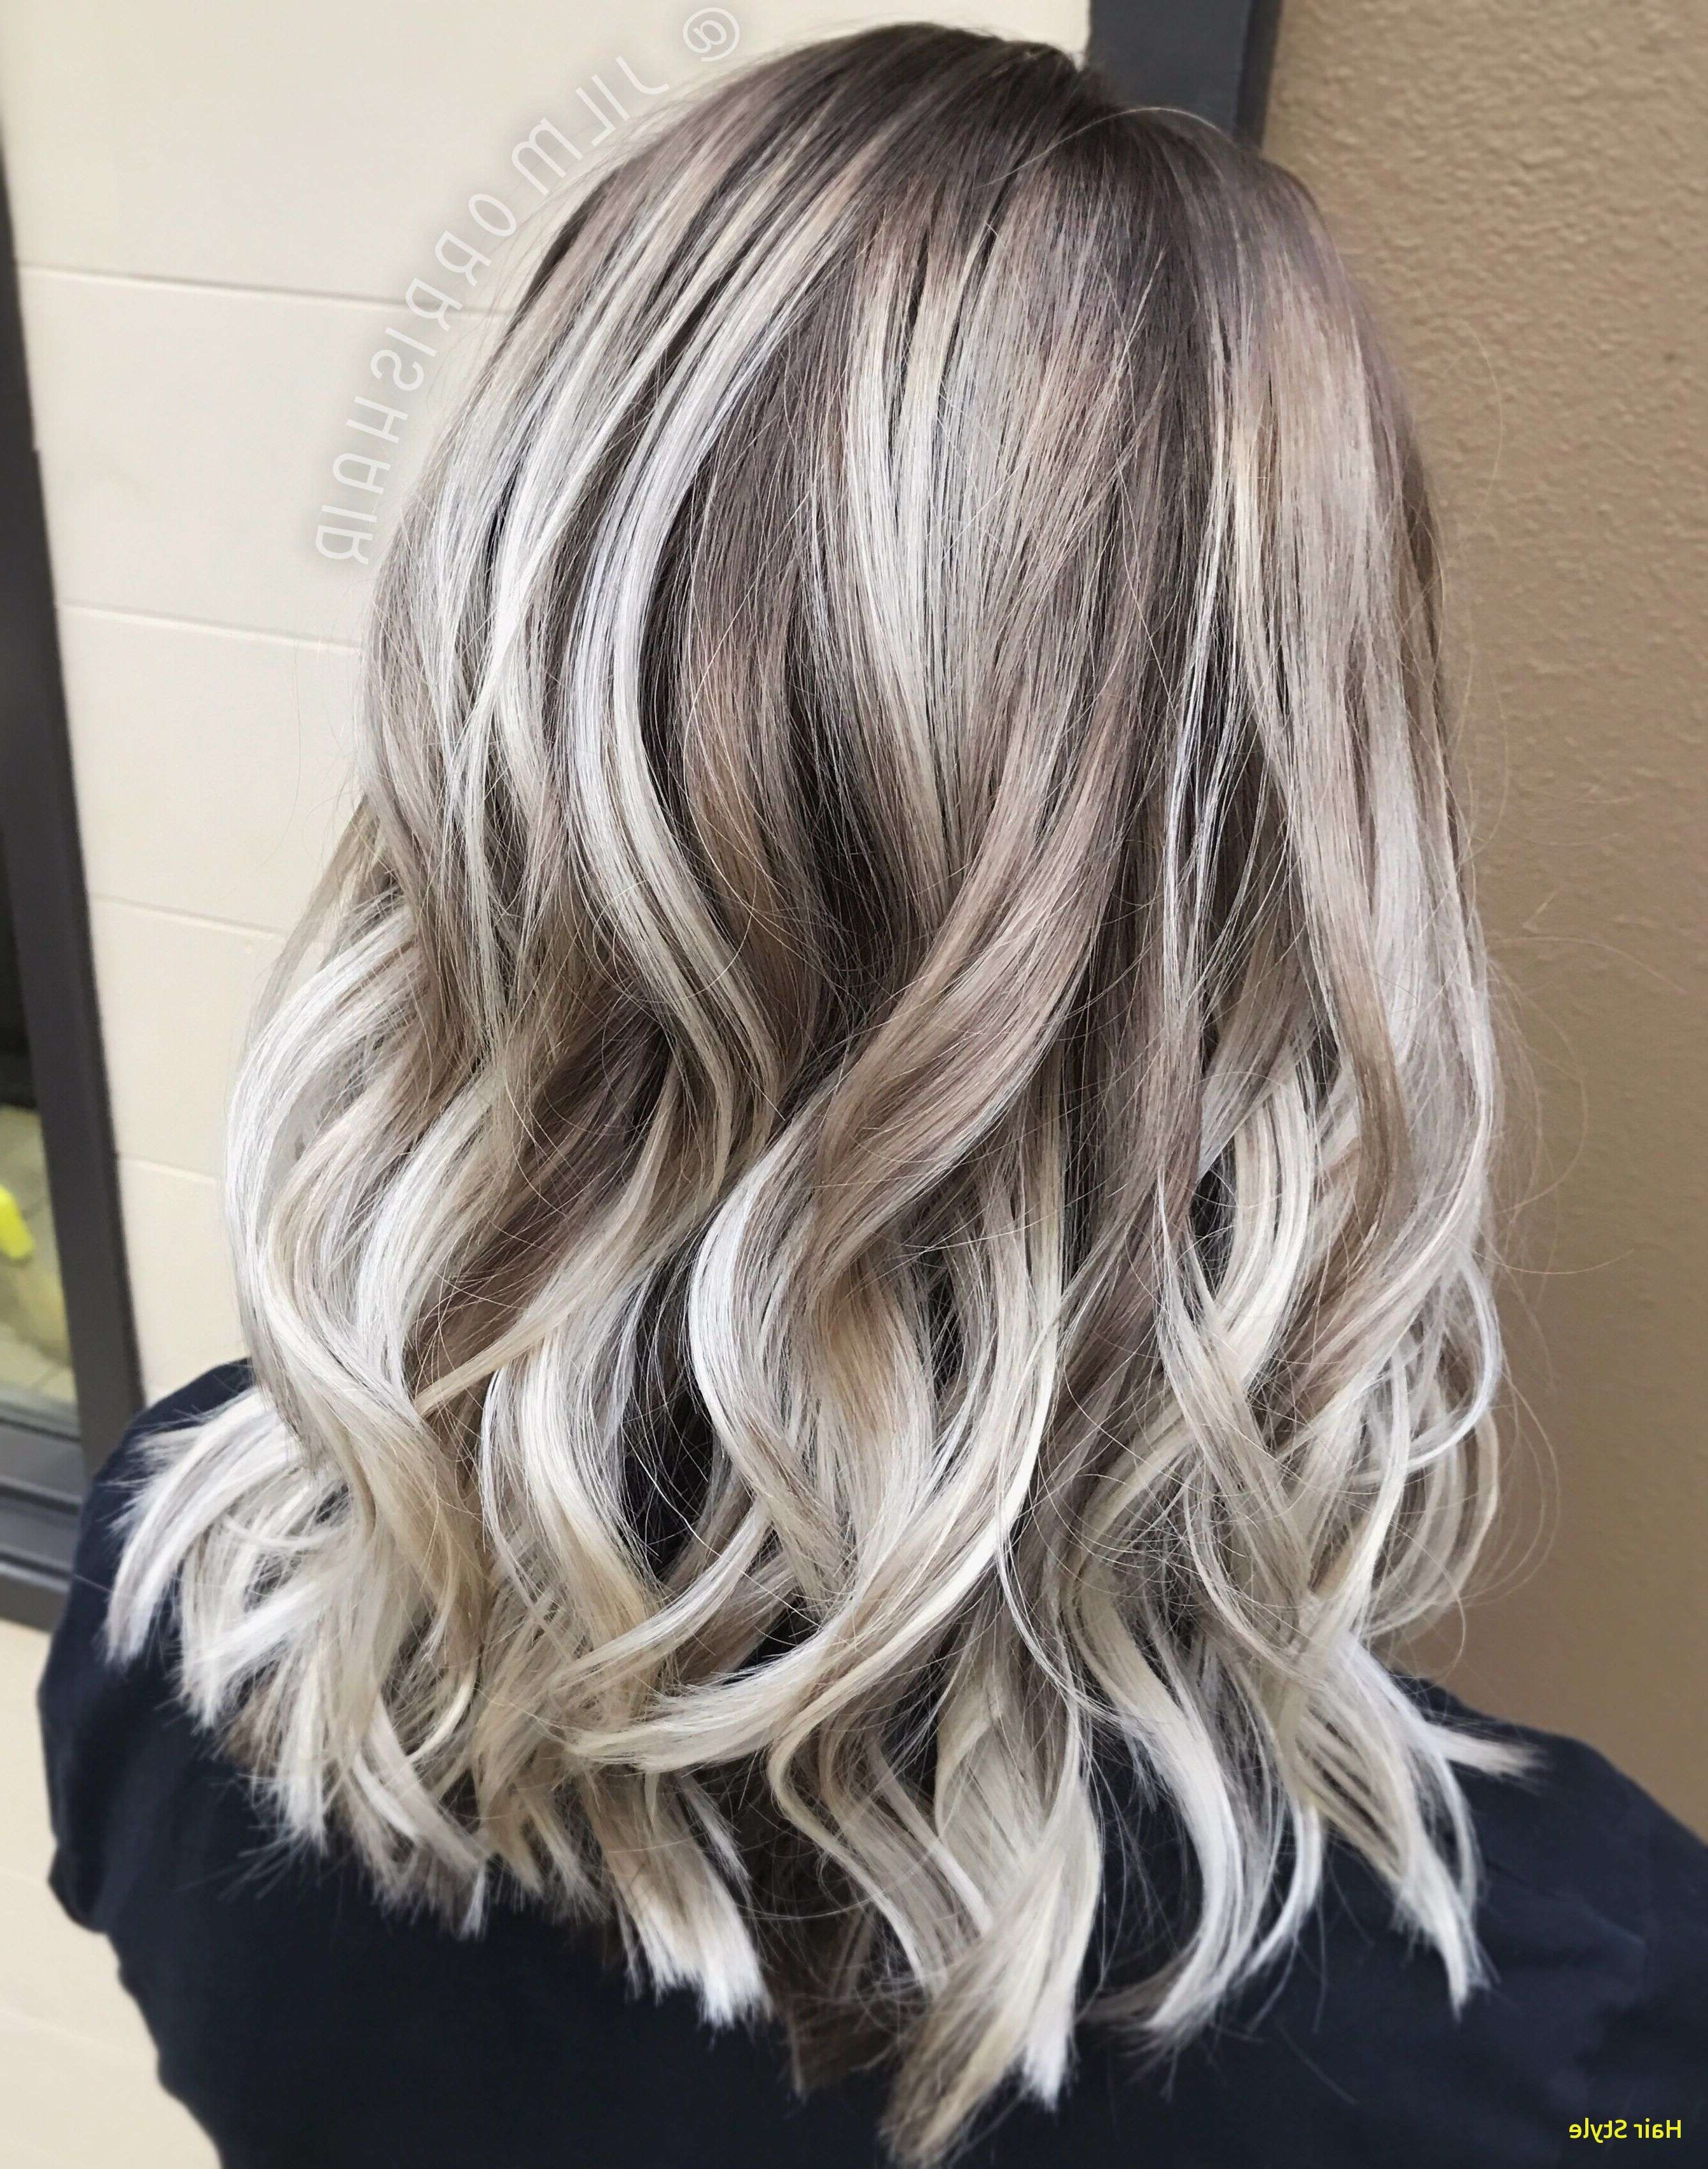 2018 Dirty Blonde Balayage Babylights Hairstyles In Blonde Highlights With Dark Roots New White Ash Blonde Balayage (View 5 of 20)